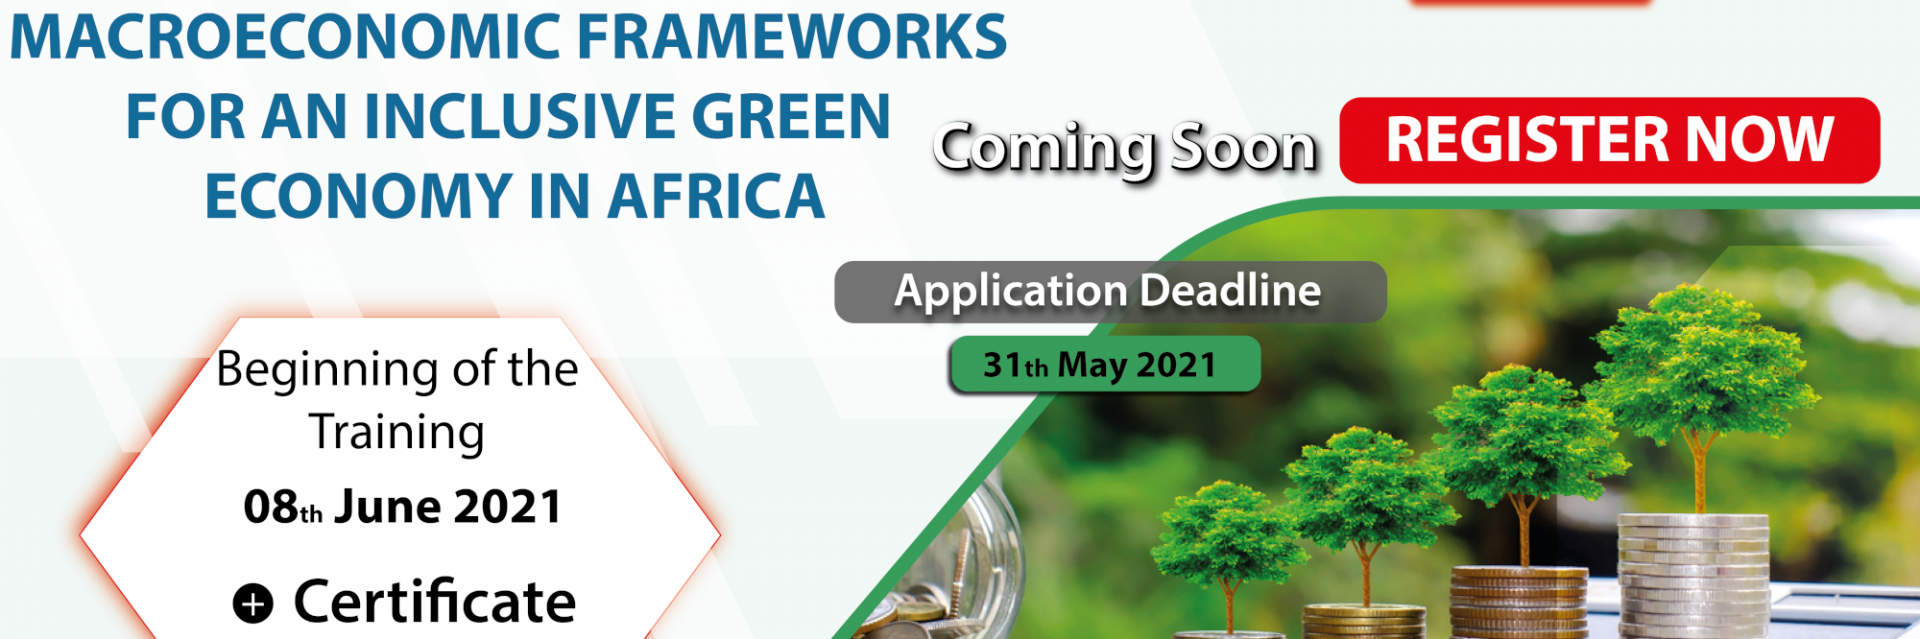 Macroeconomic Framework for an Inclusive Green Economy in Africa